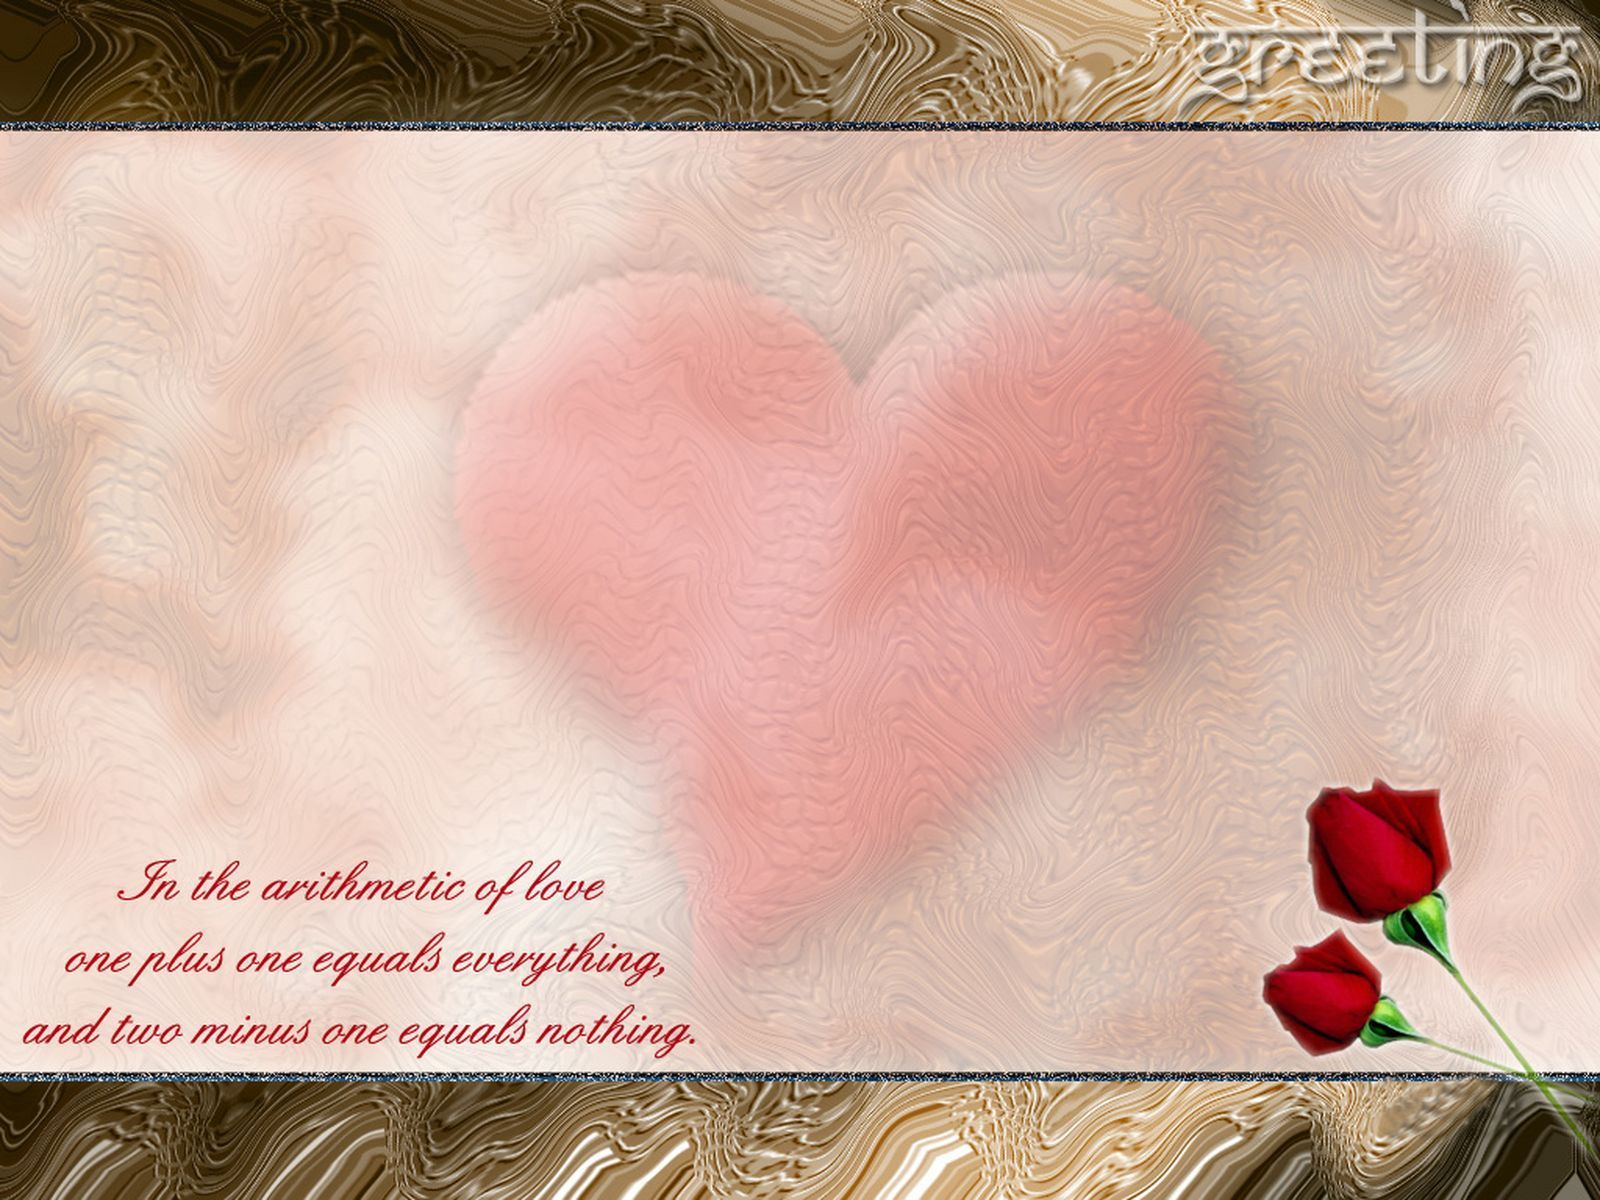 wallpaper with love message - photo #2